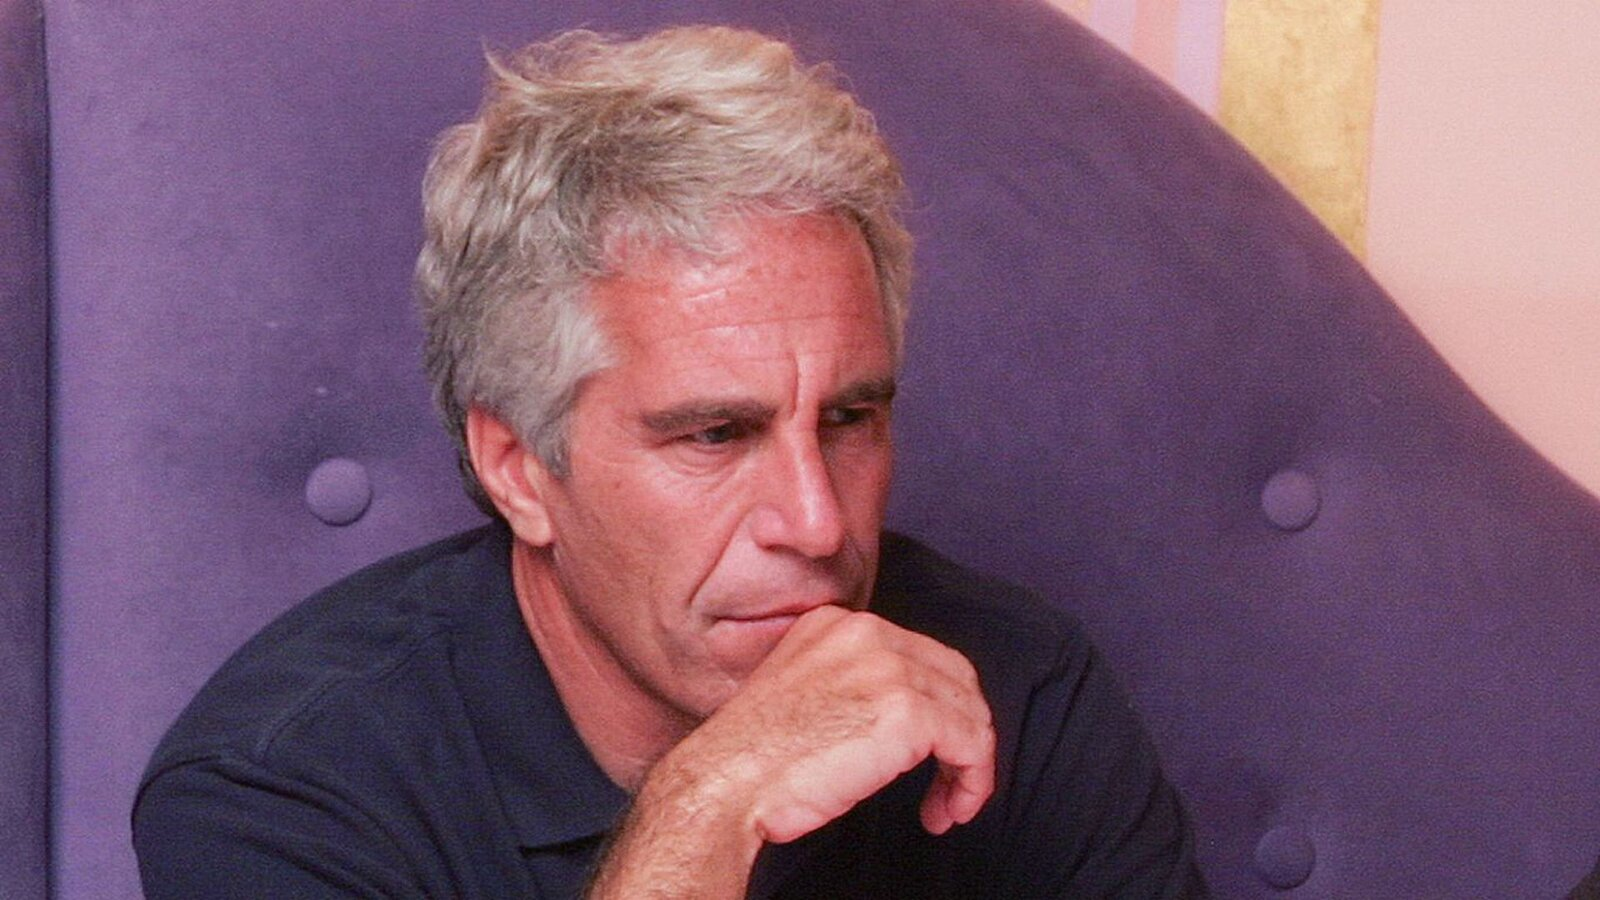 As people continue to investigate the truth behind Jeffrey Epstein and his Pedo Island, strange stories have come out. We investigate the truth behind them.